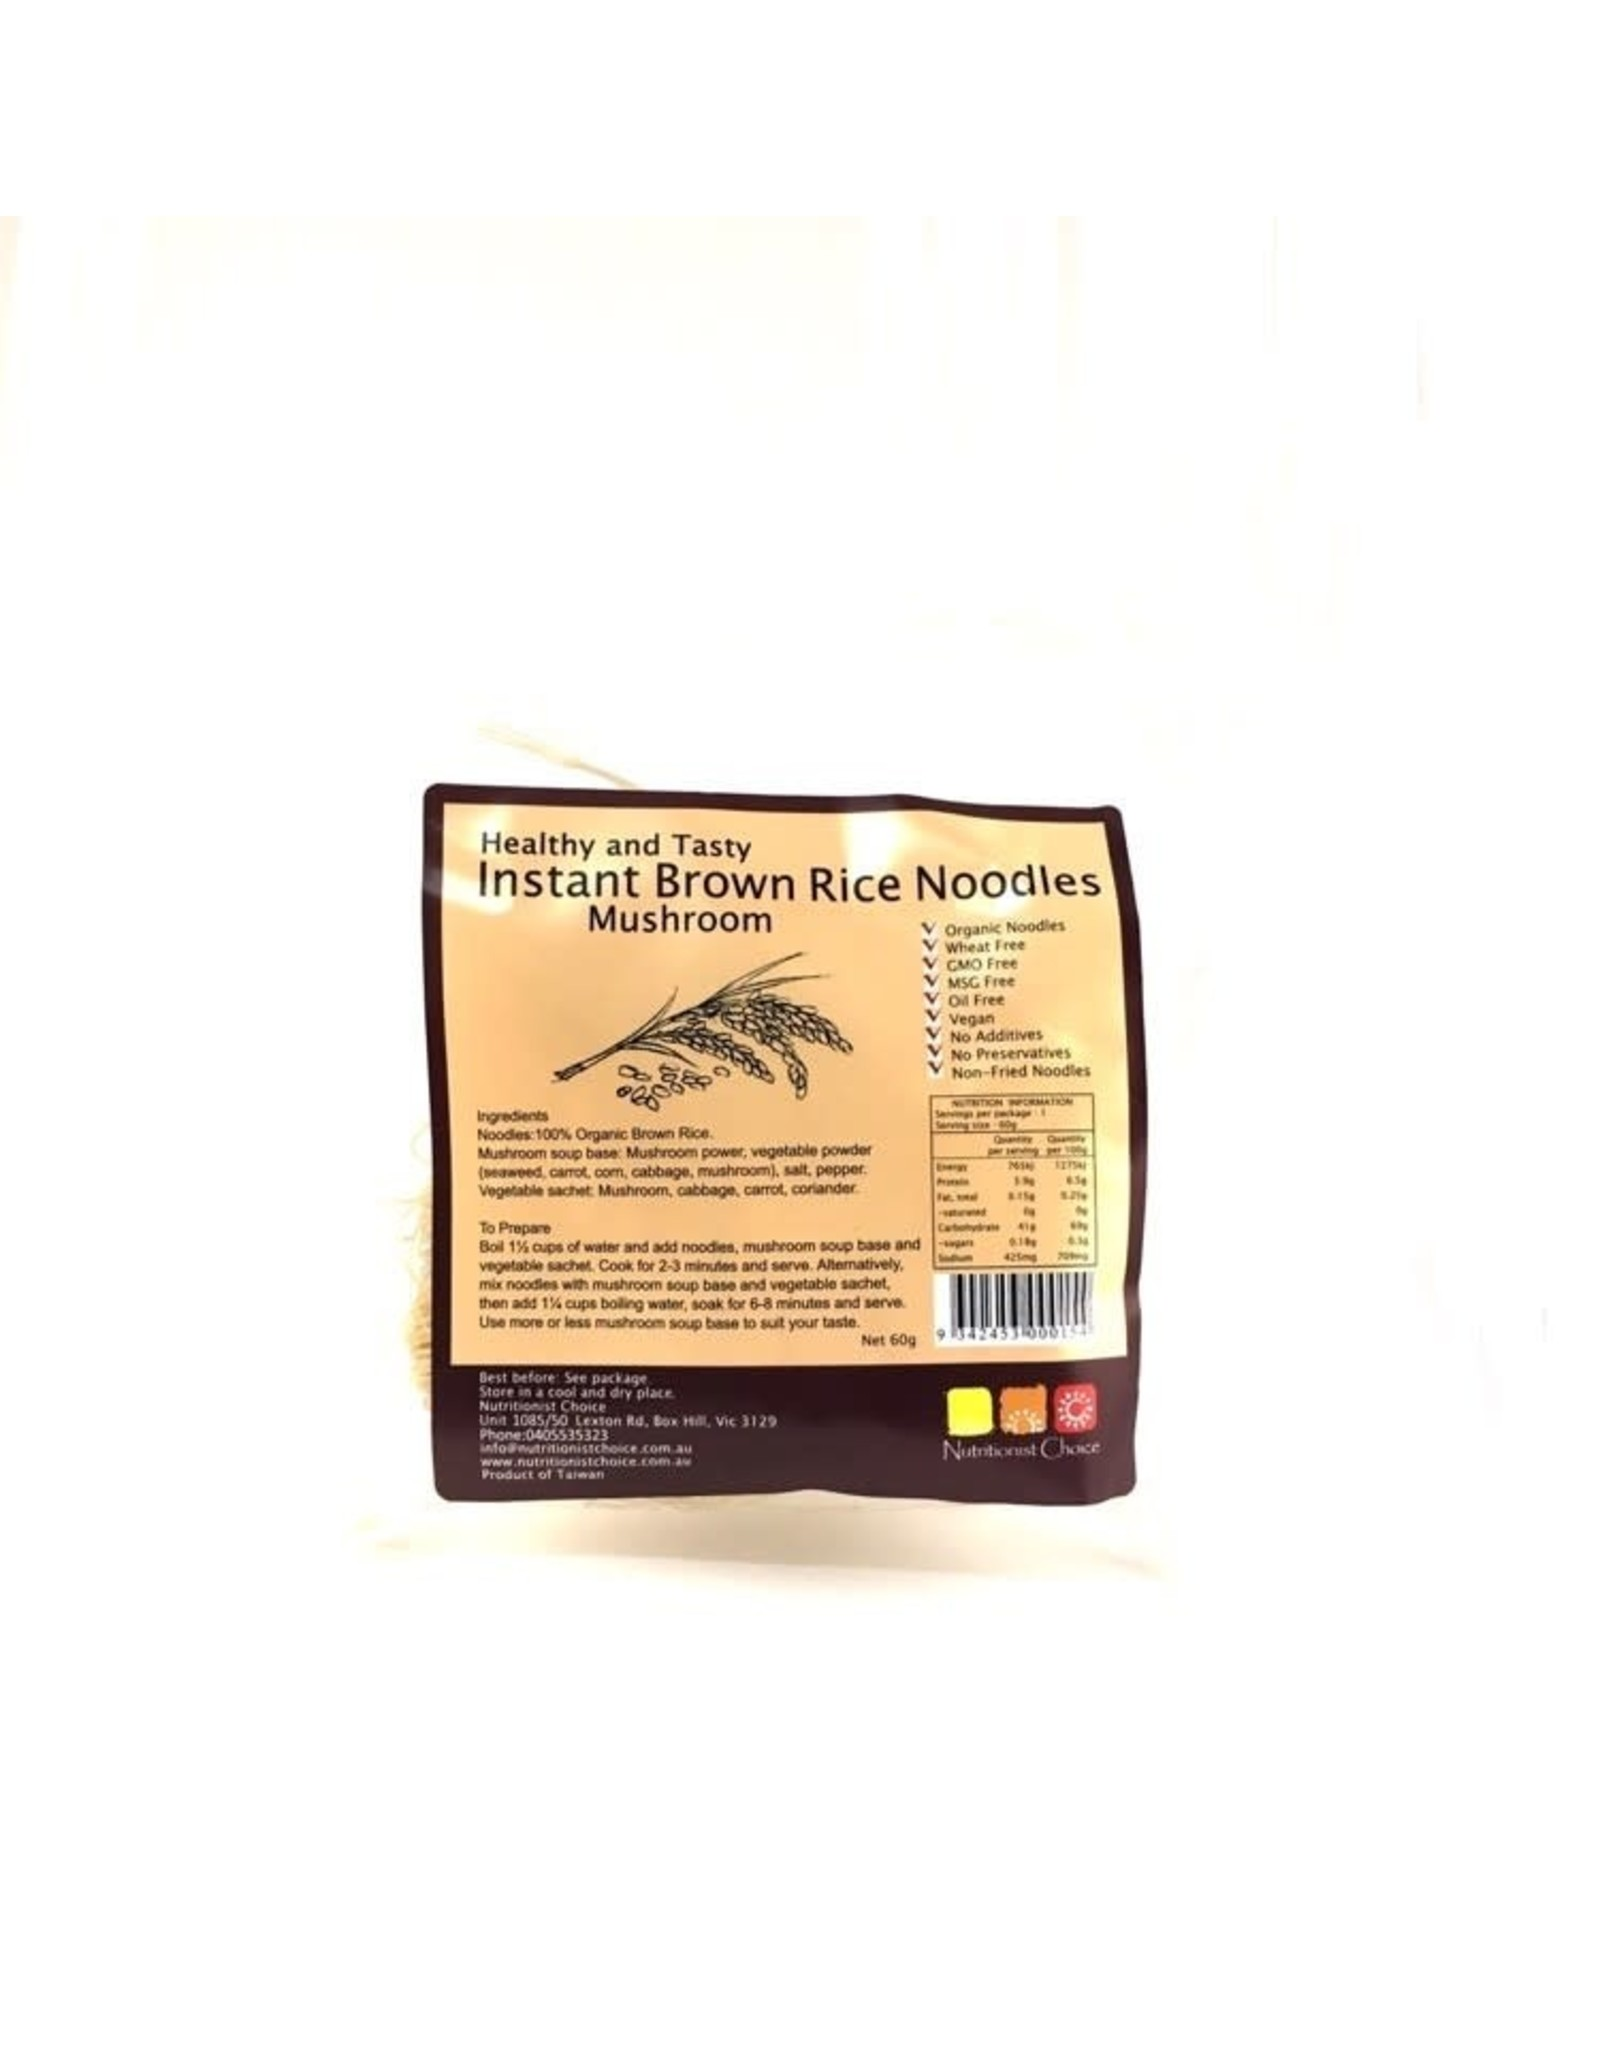 Nutritionist Choice Brown Rice Instant Noodles Mushroom 60g